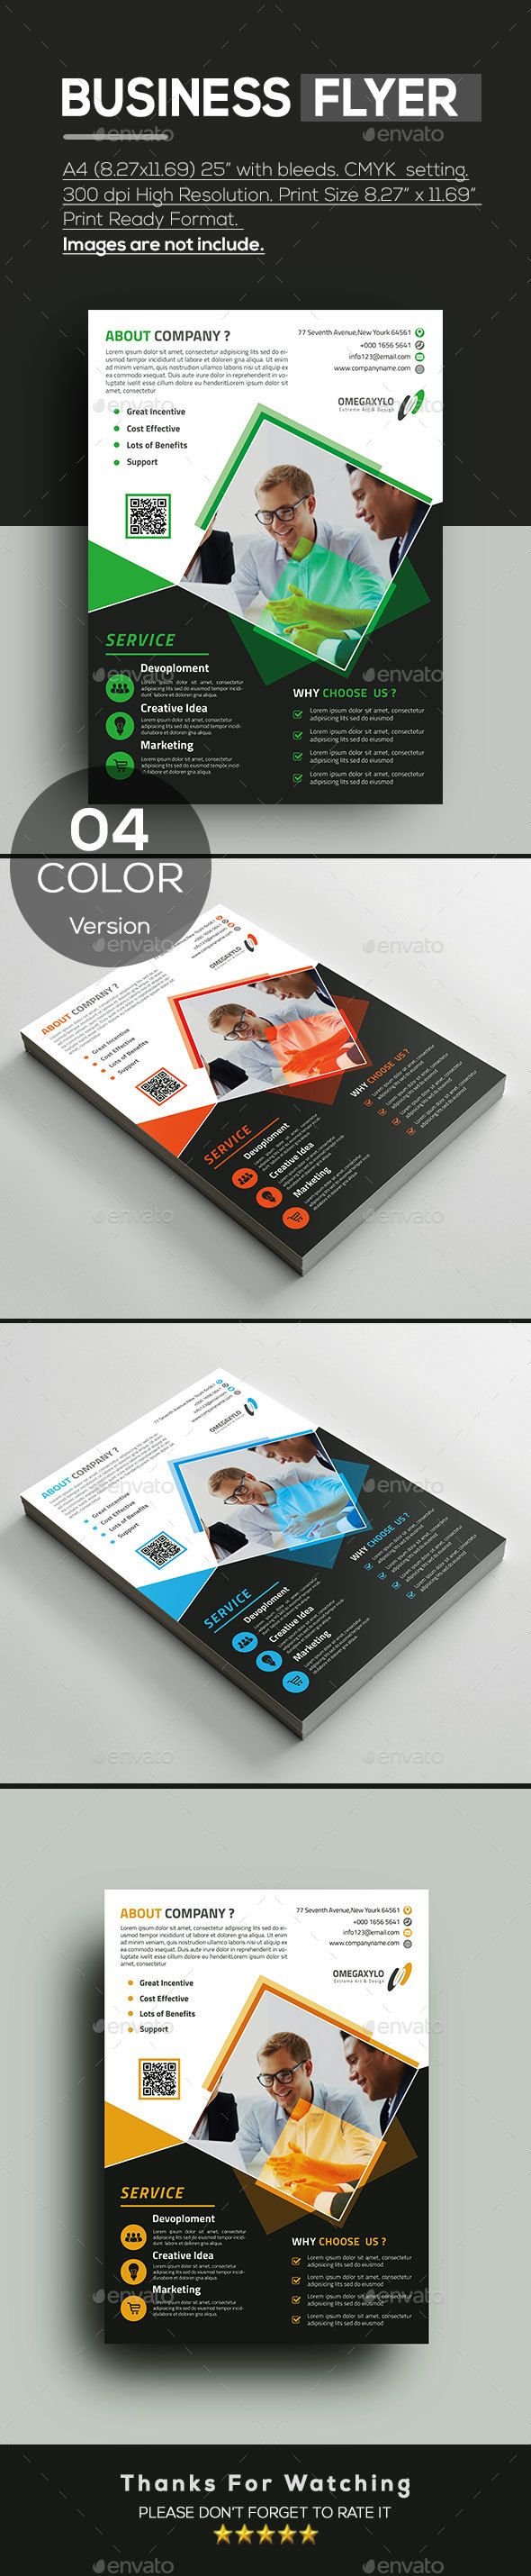 1000 ideas about business flyers business flyer business flyer